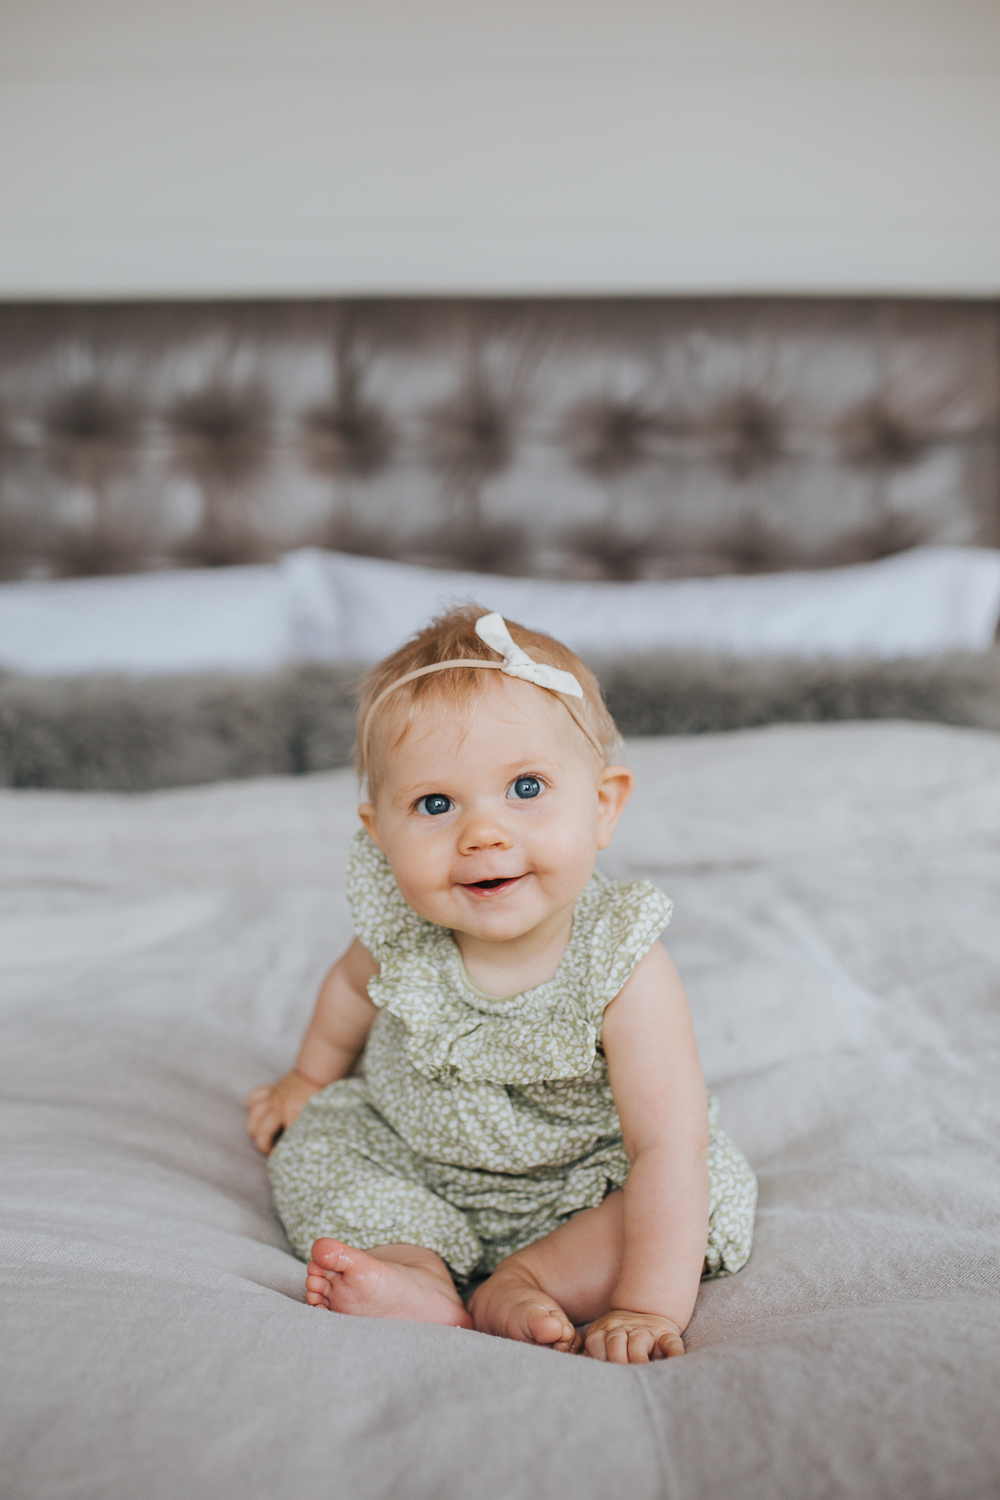 6 month old baby girl with blonde hair and blue eyes sitting on bed smiling - Newmarket In-home Family Photography